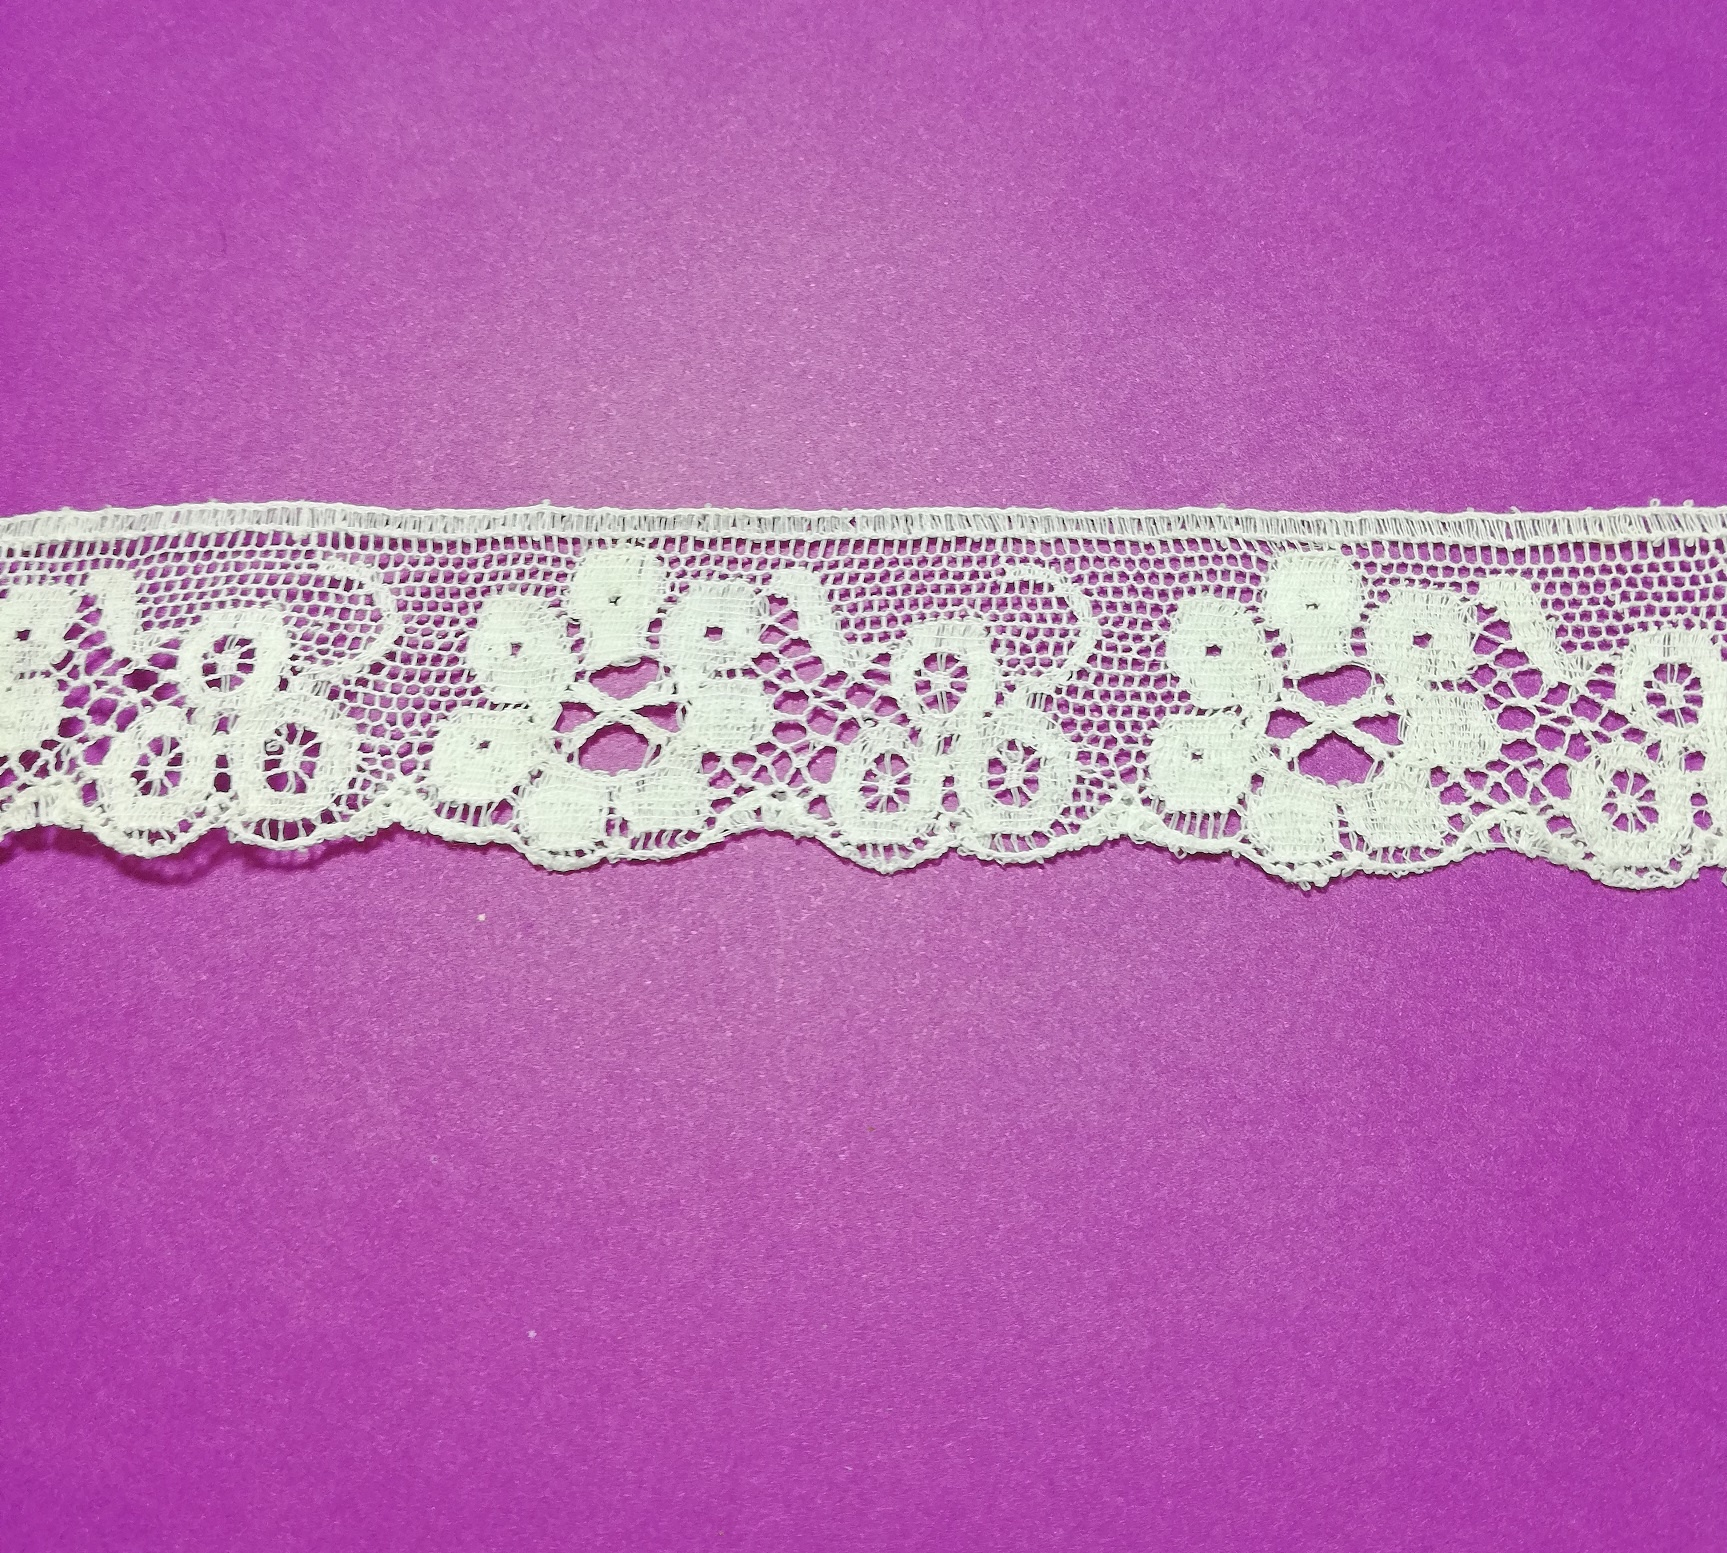 English white cotton lace with flowers 30mm.